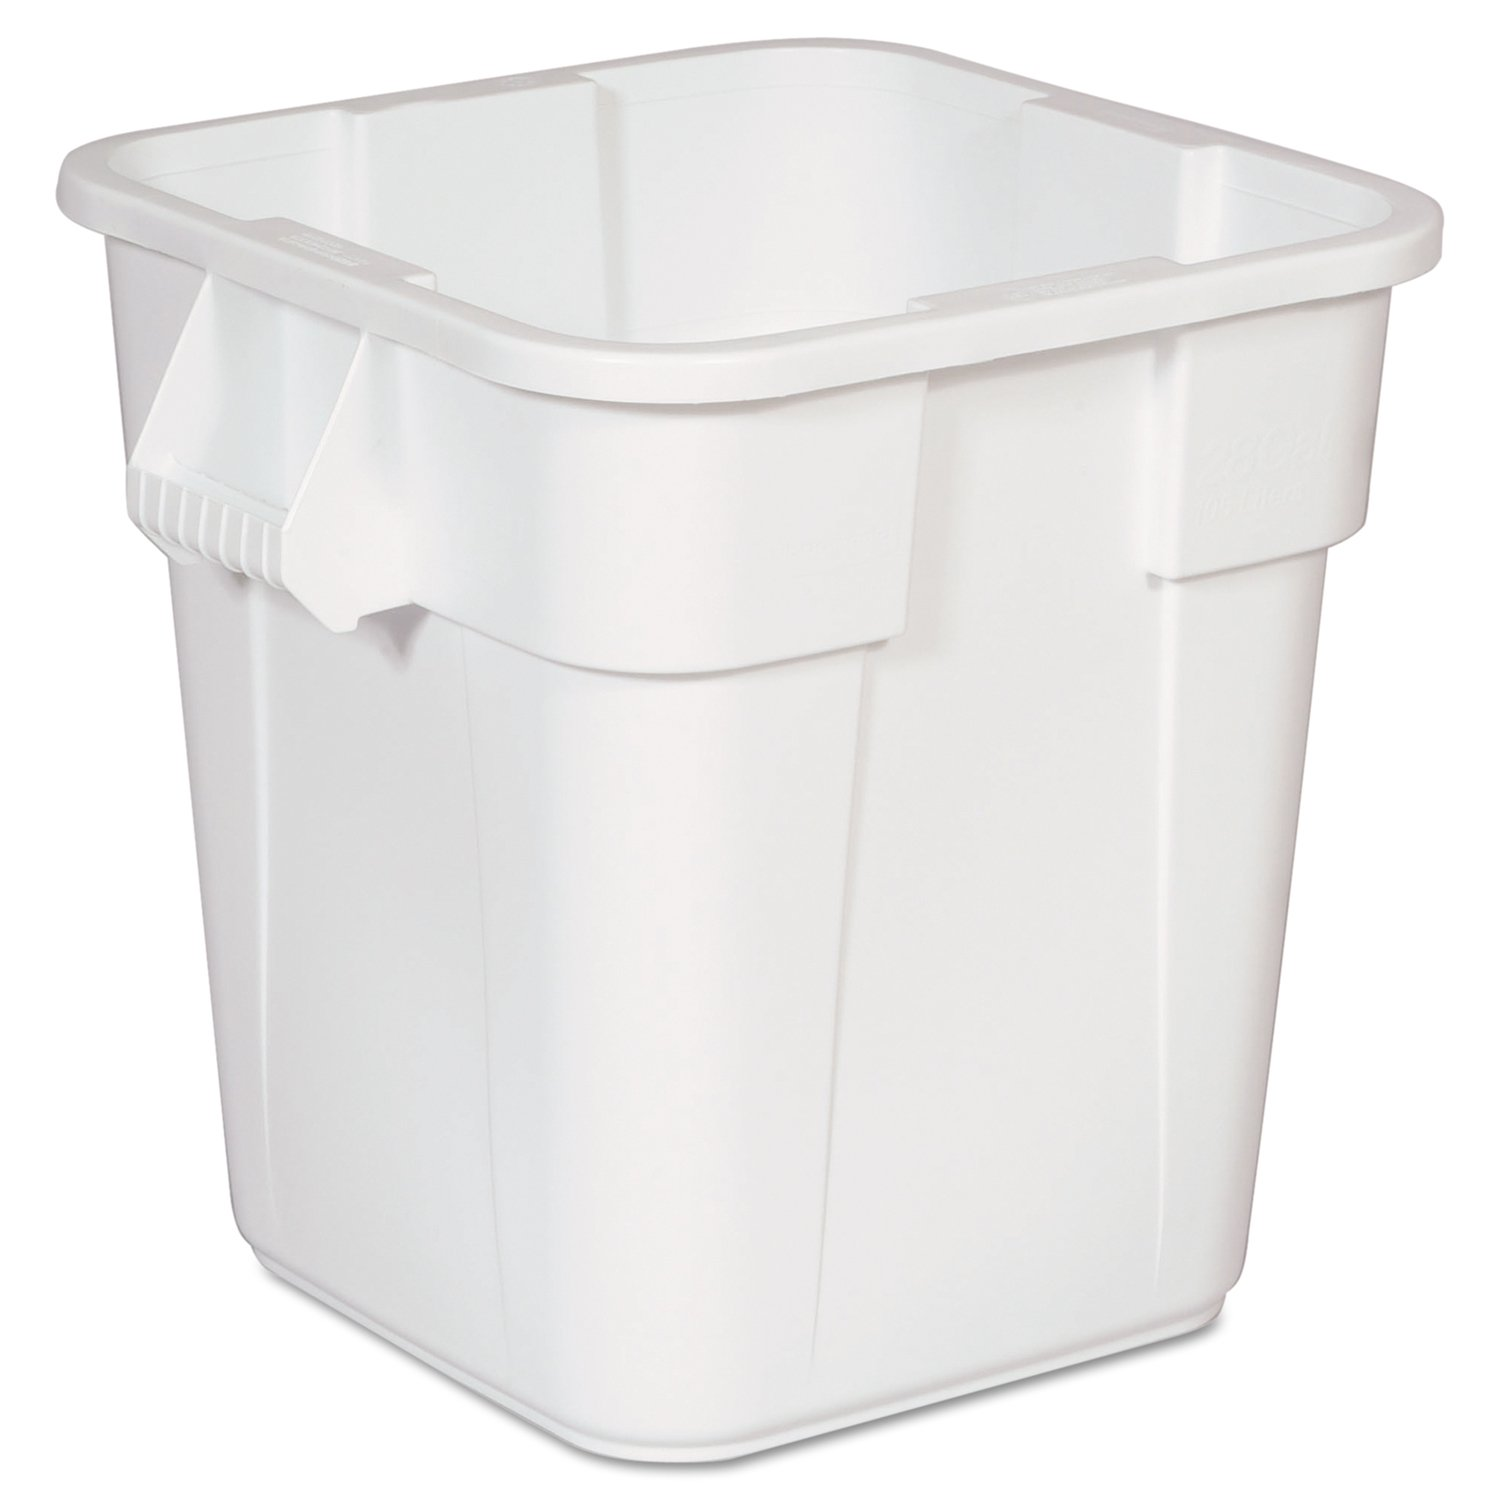 Rubbermaid 106L BRUTE Square Container - Red Newell Rubbermaid FG352600RED